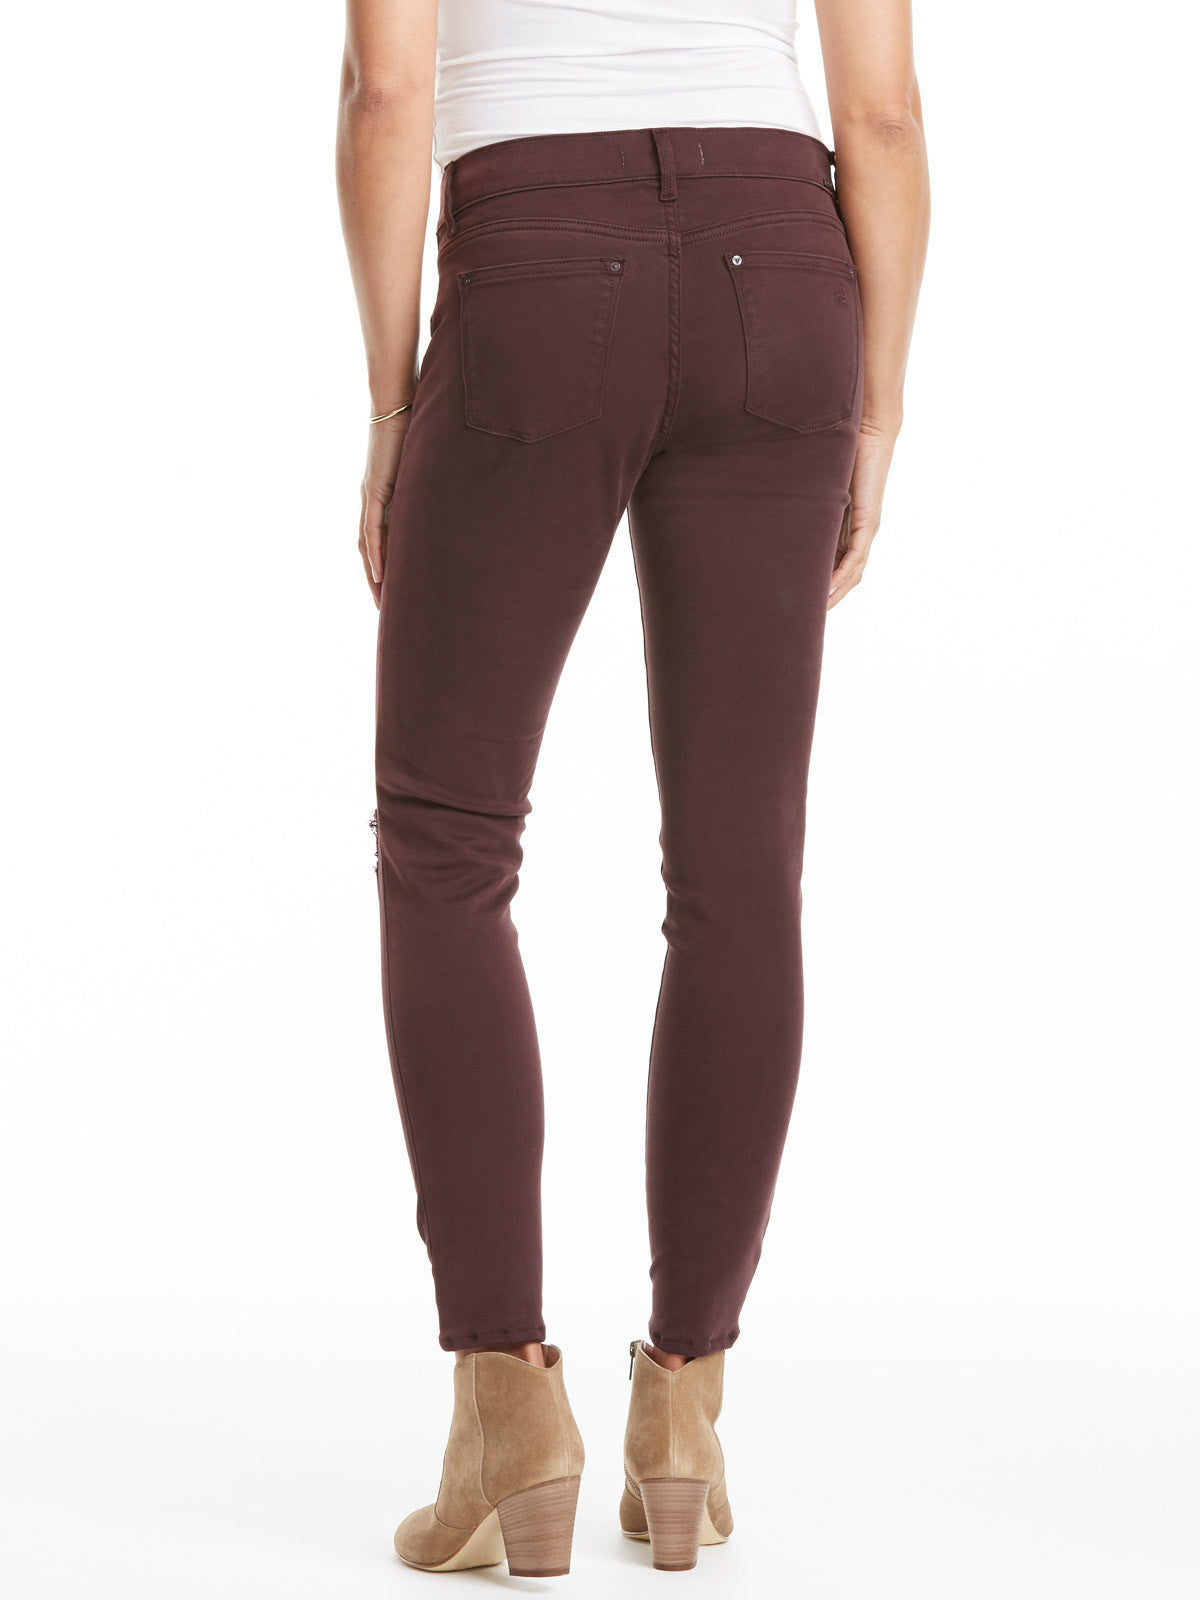 DL1961 Emma Maternity Jean - Reed | TILDEN